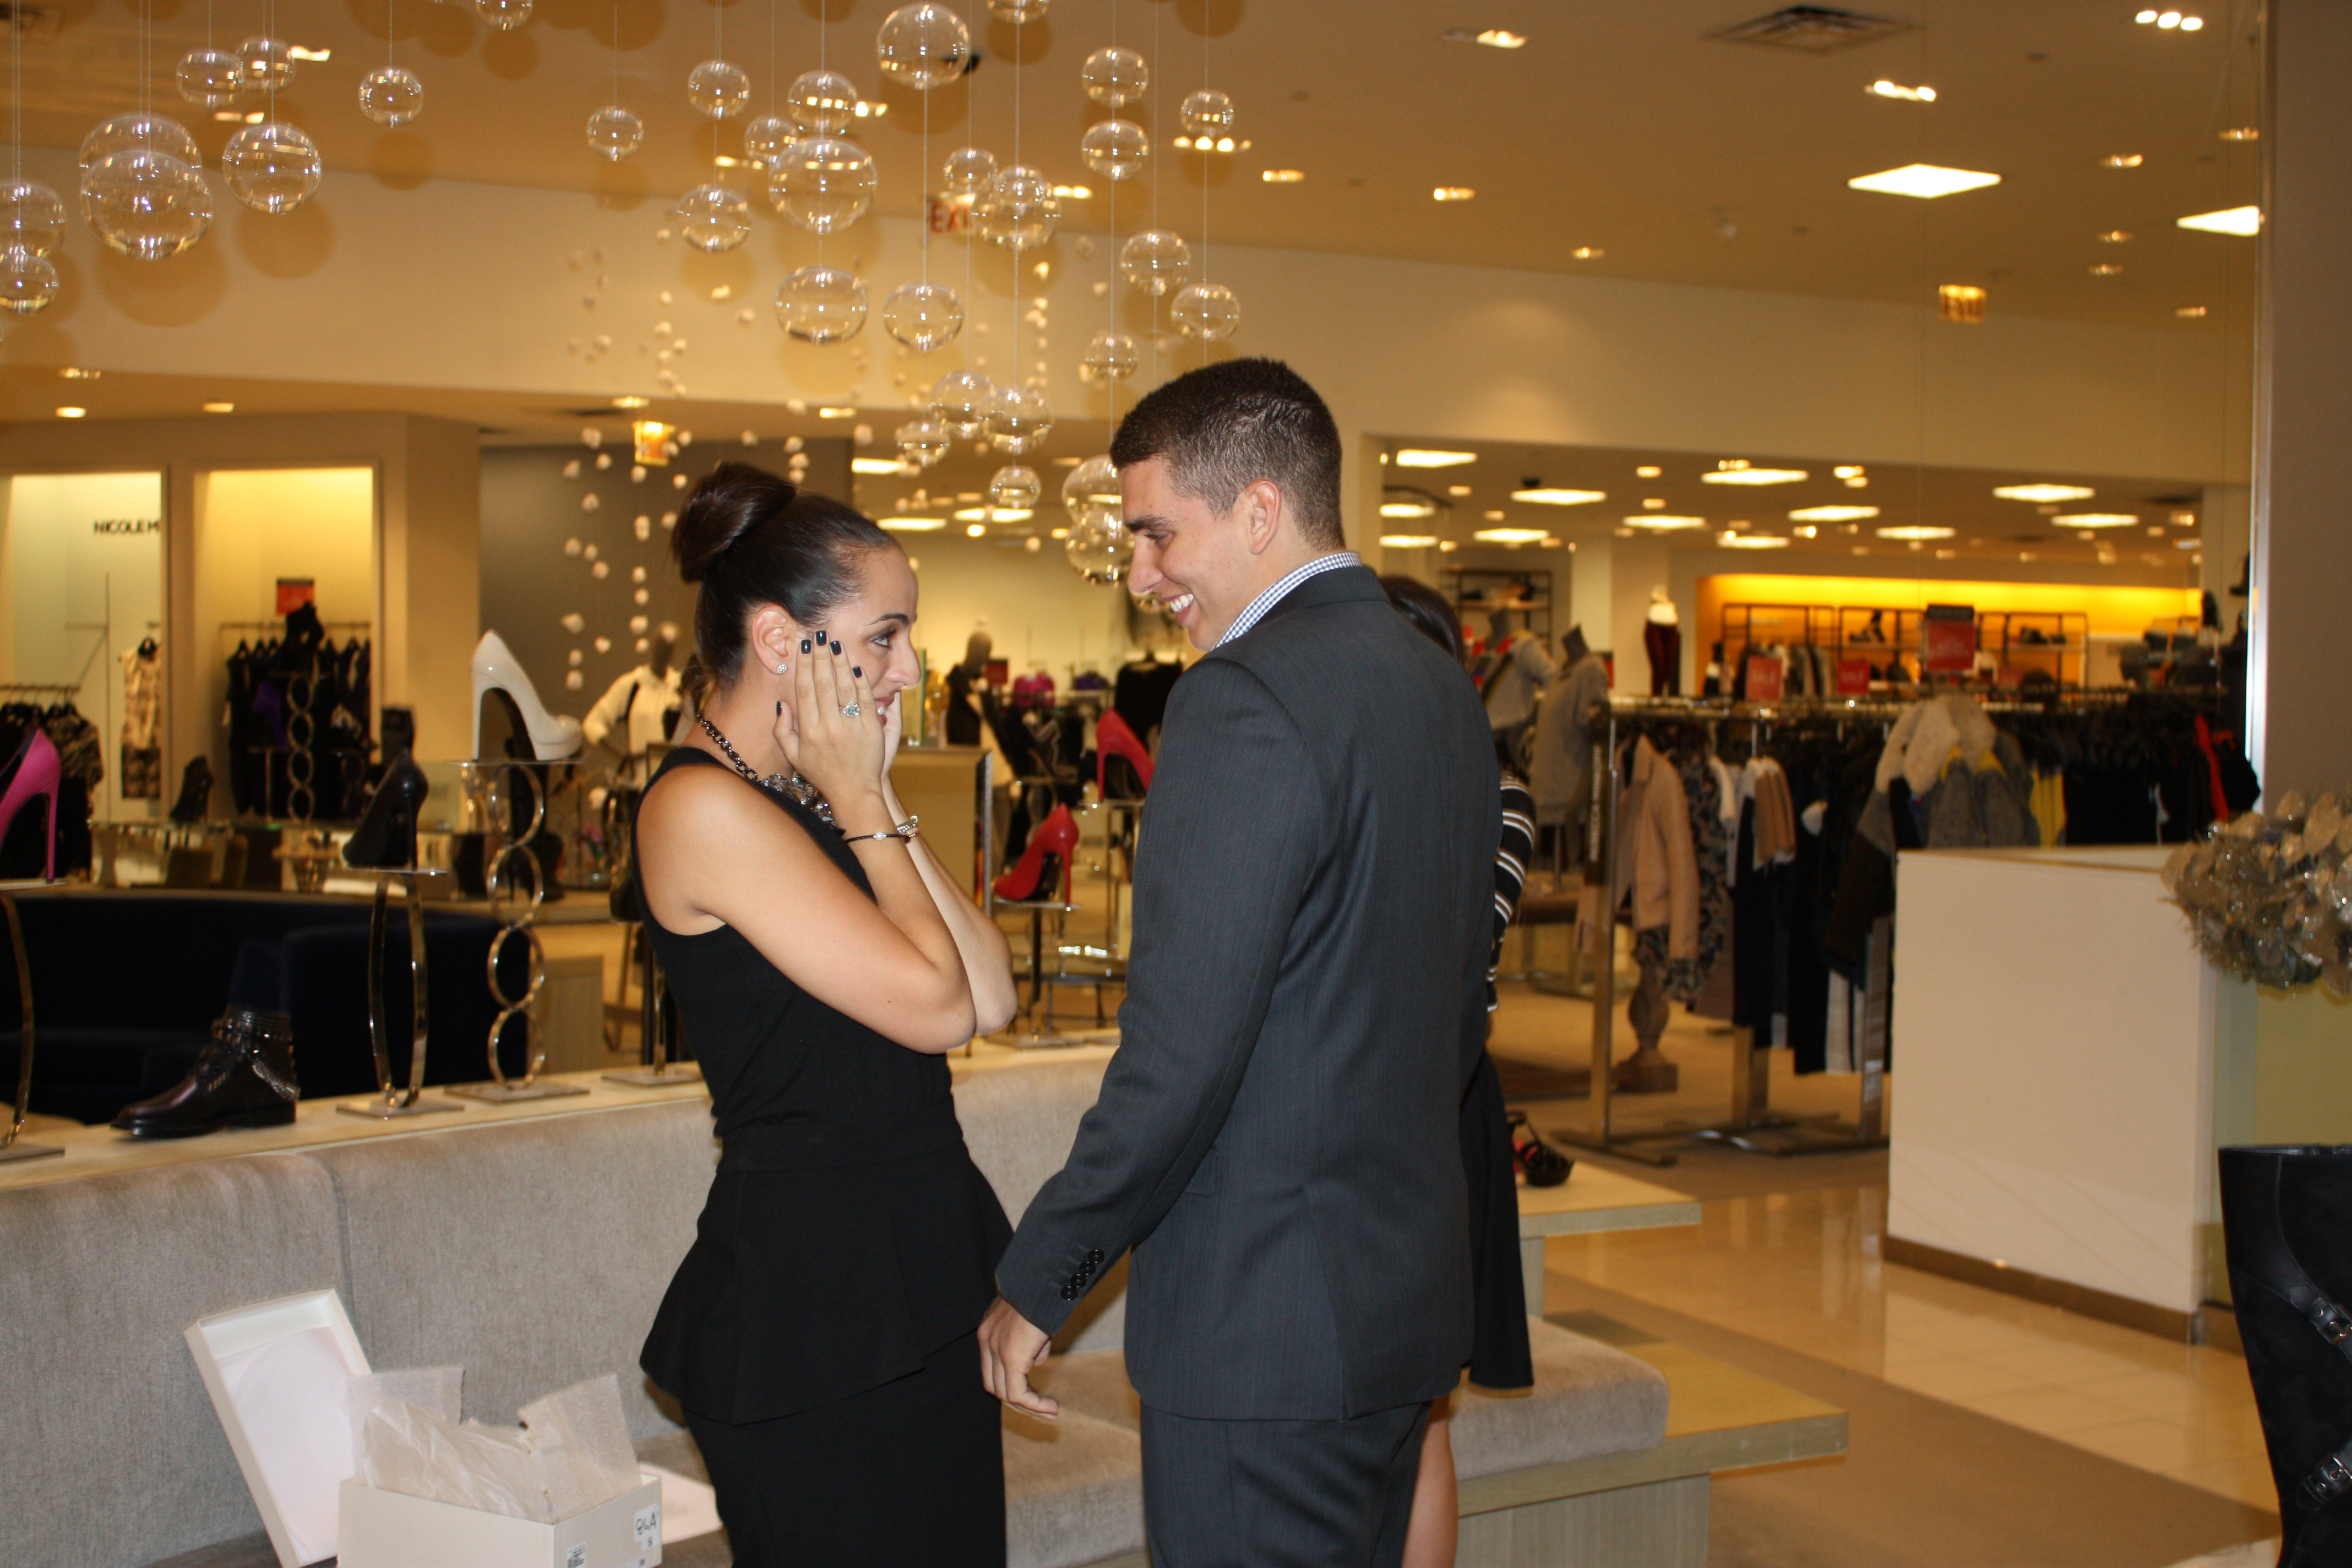 Image 5 of Erika and Alex | Saks Fifth Avenue Proposal